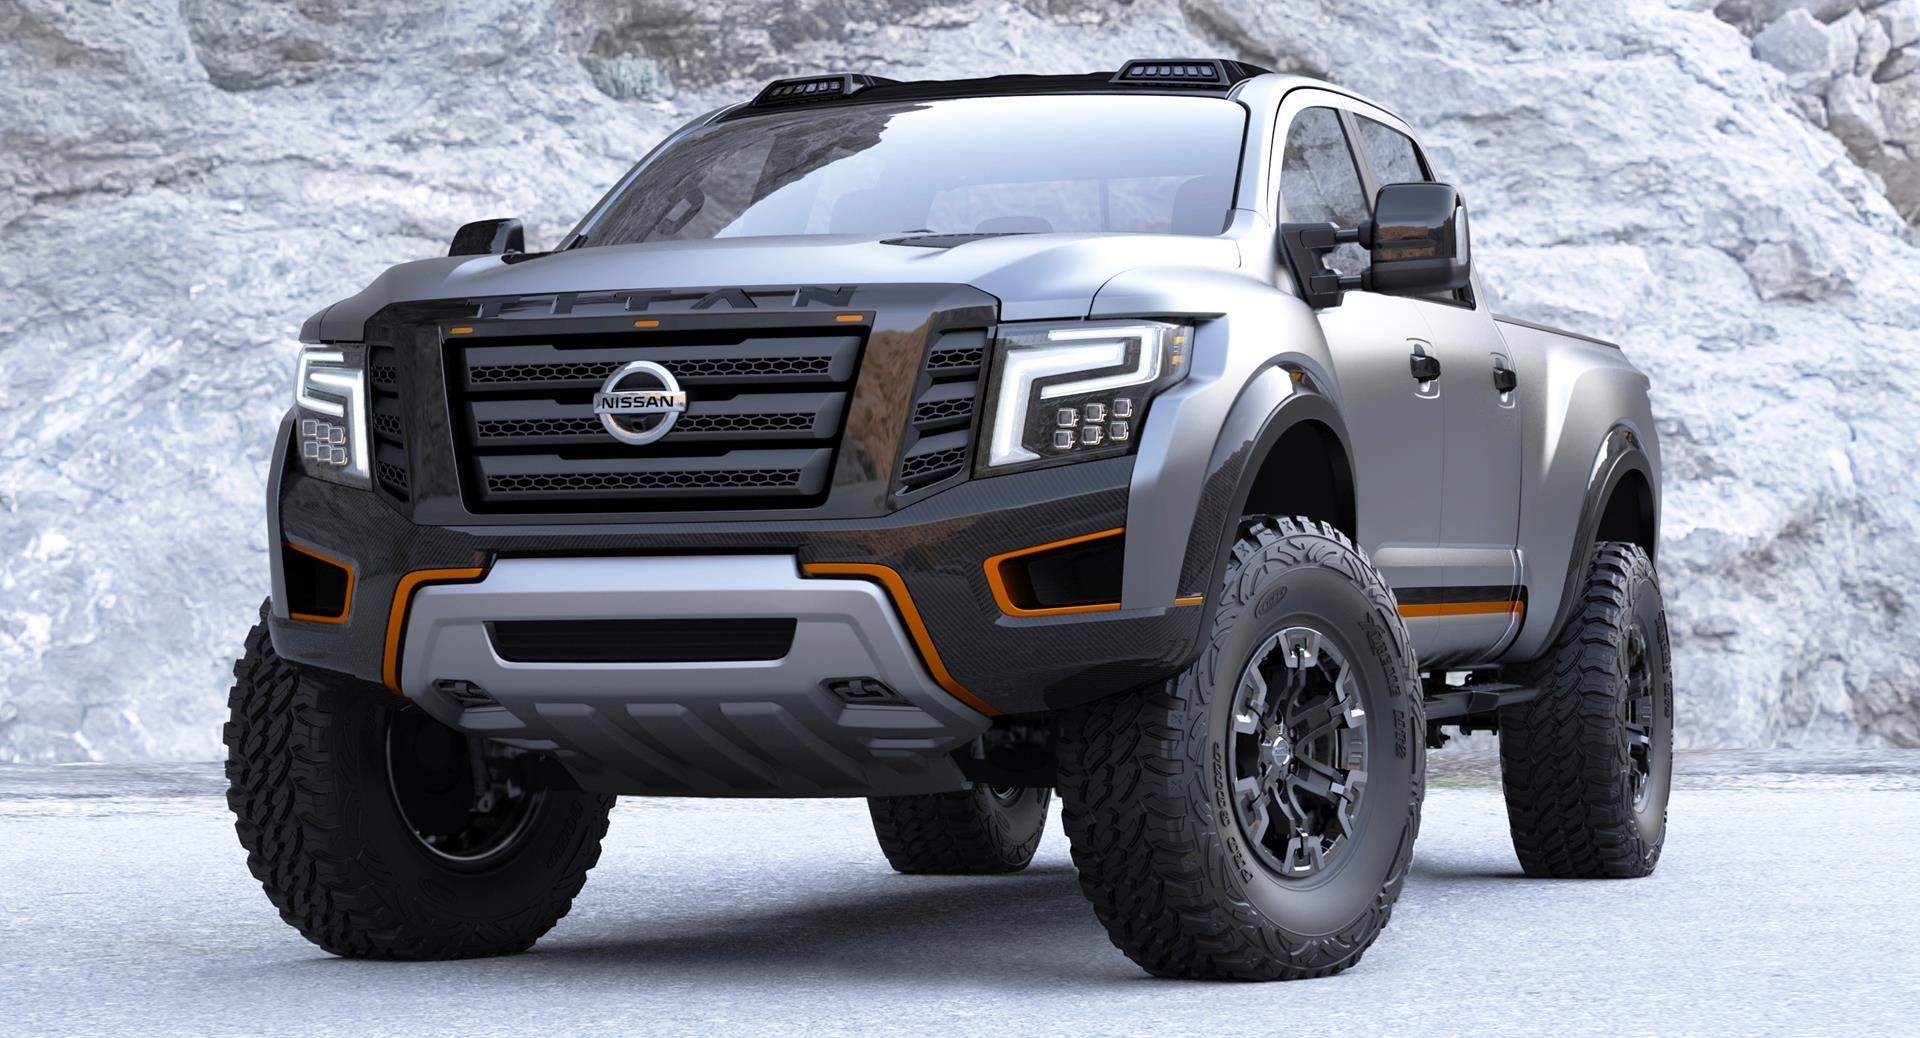 We are live from the detroit auto show where nissan has staged the world premiere of the aggressive 2016 titan warrior concept